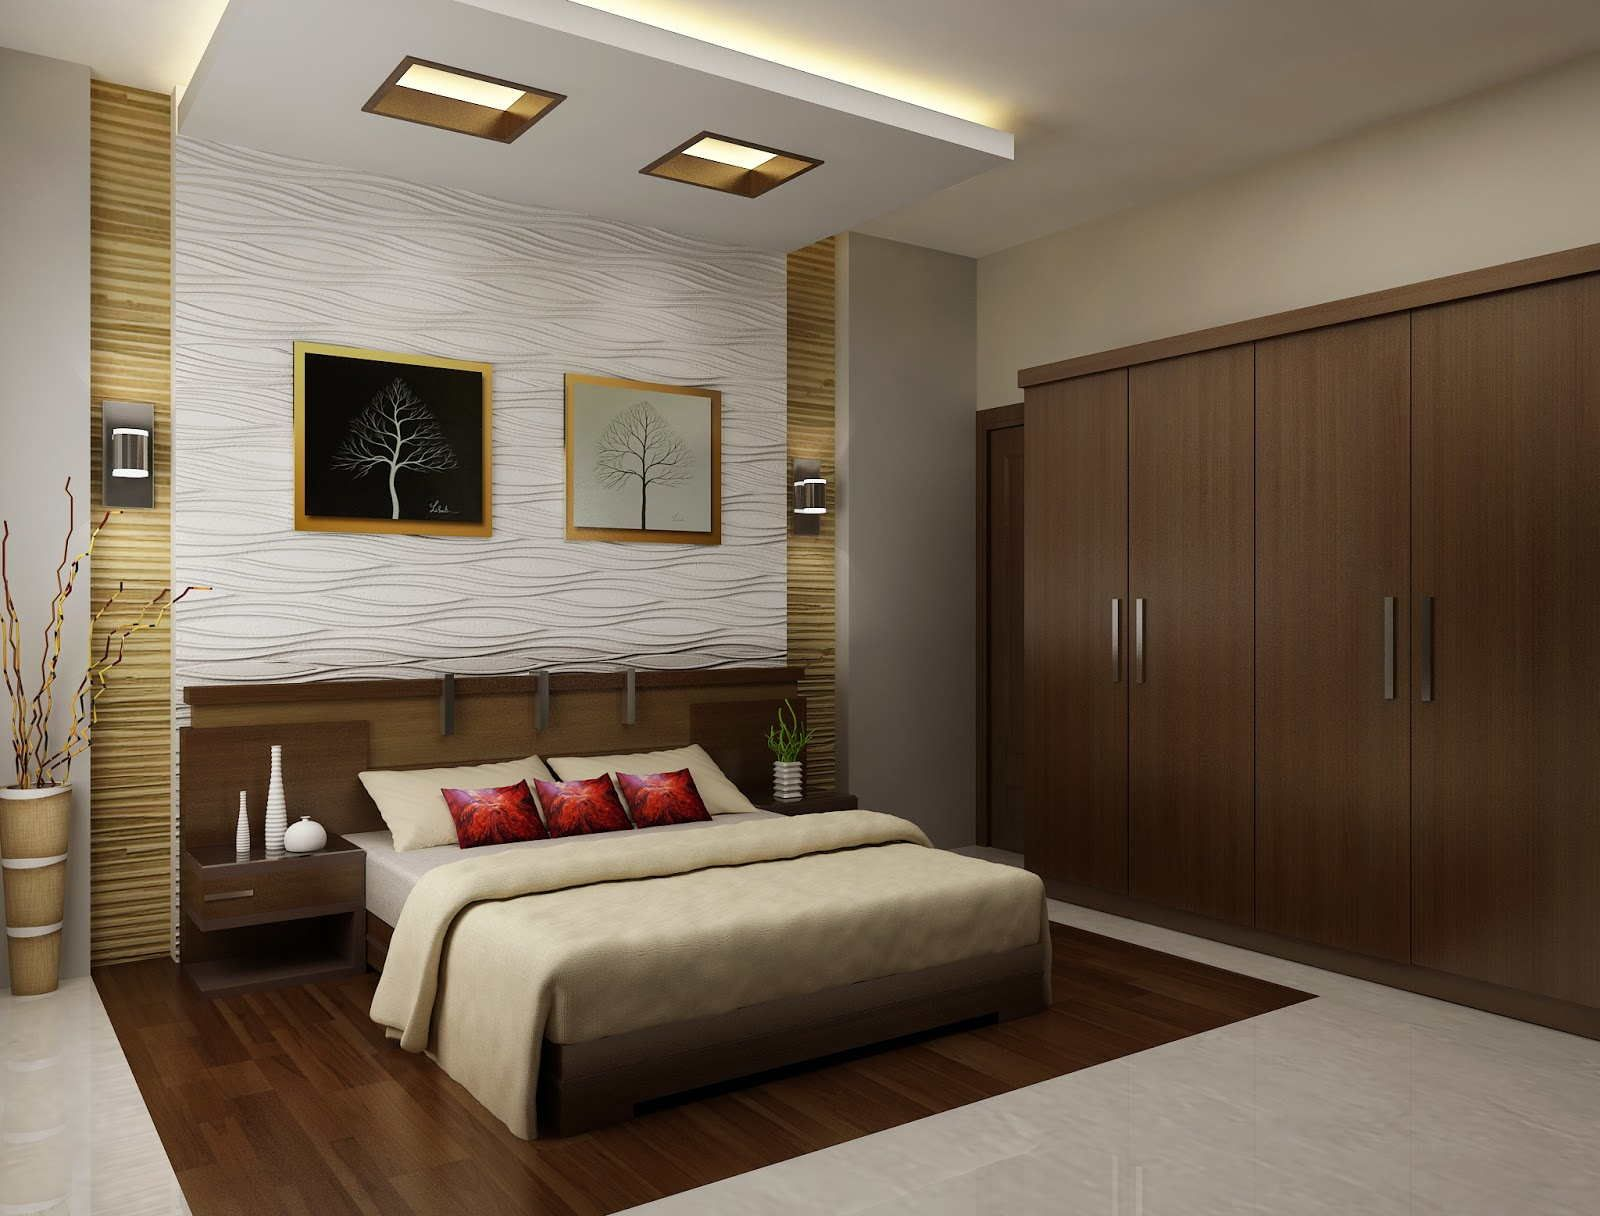 Interior Bedroom Design Luxury Bedroom With Elements And Fittings Interior Architect